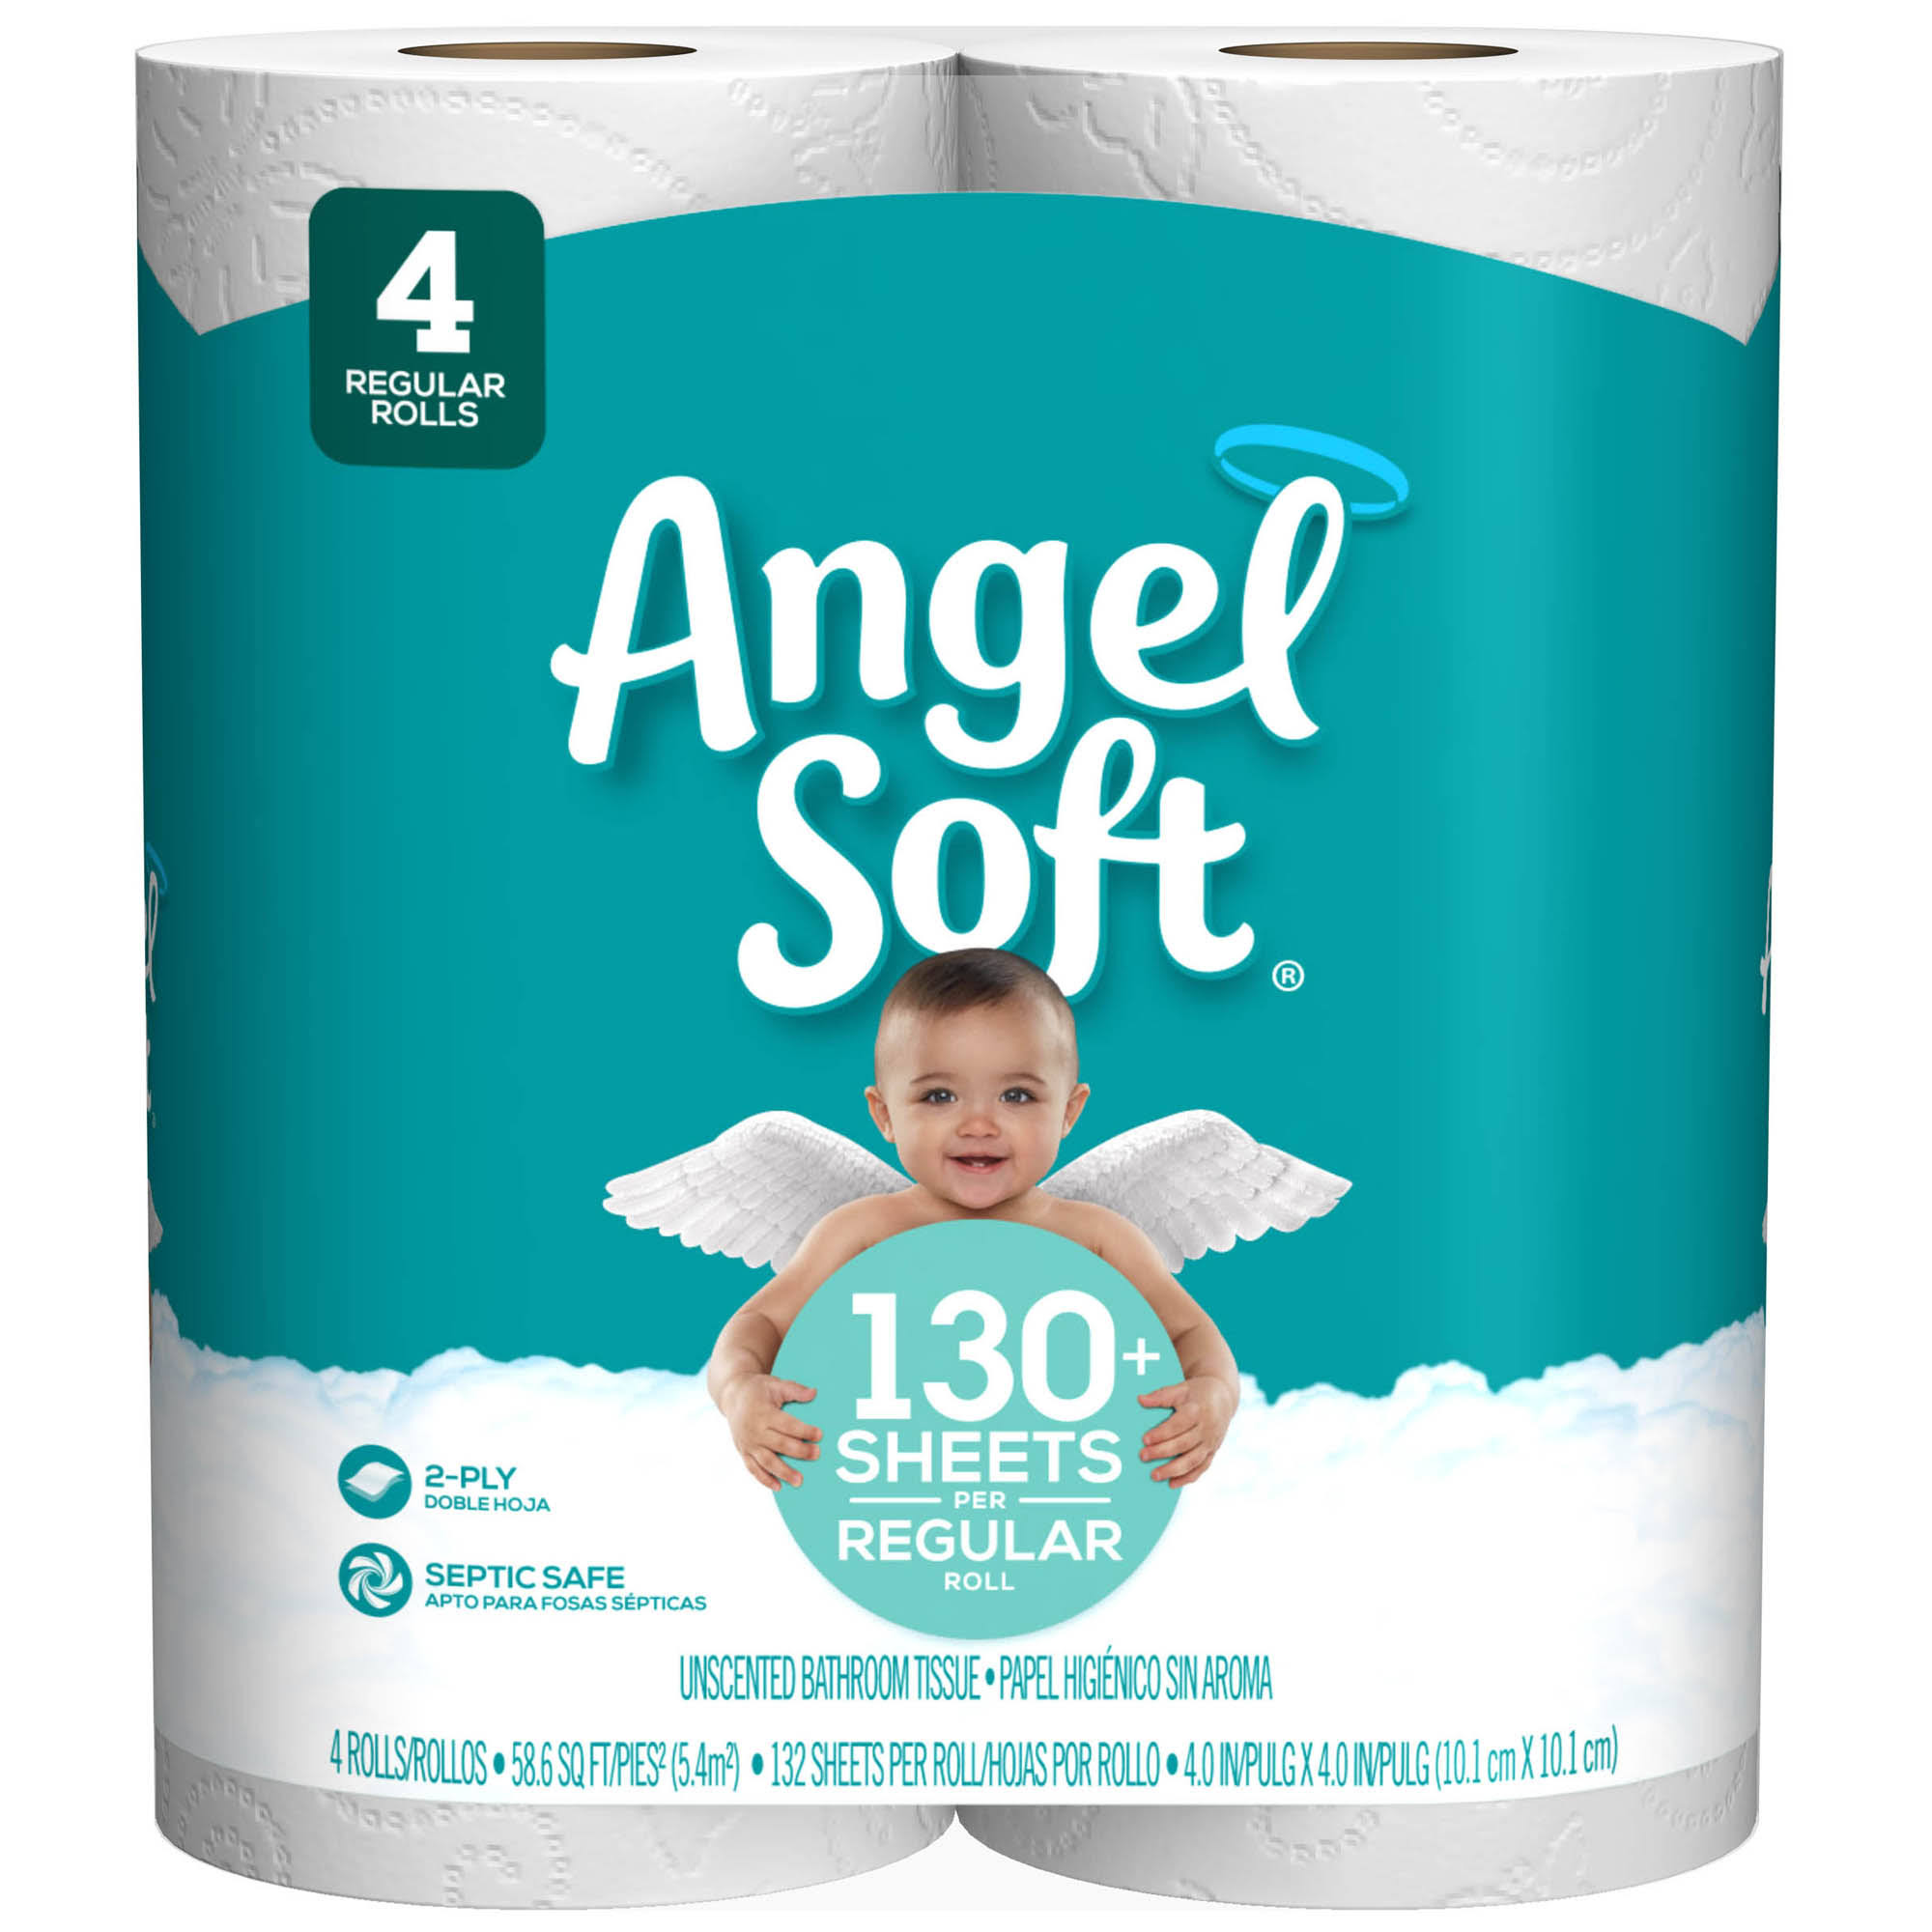 Angel Soft Unscented Bathroom Tissue